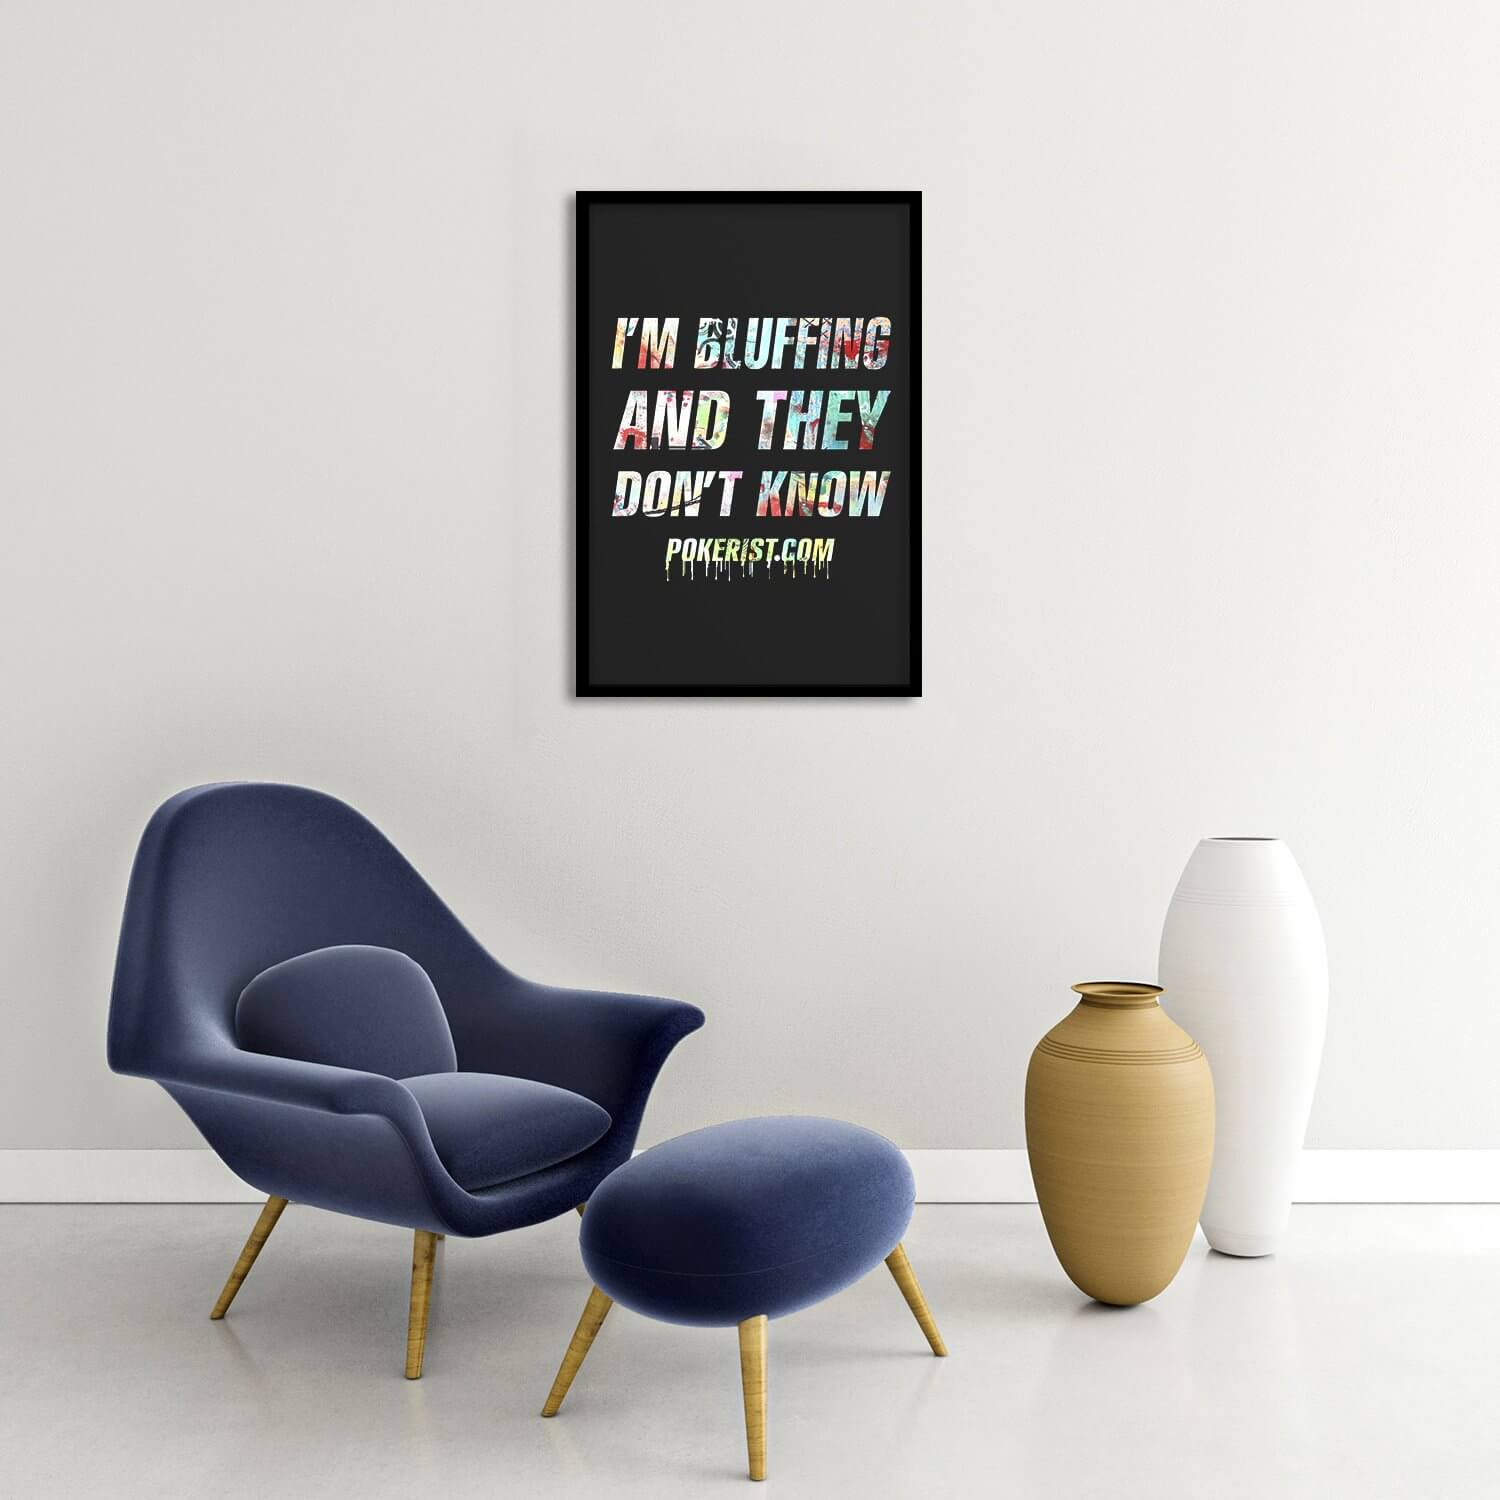 I'm Bluffing Graffiti Framed Poster